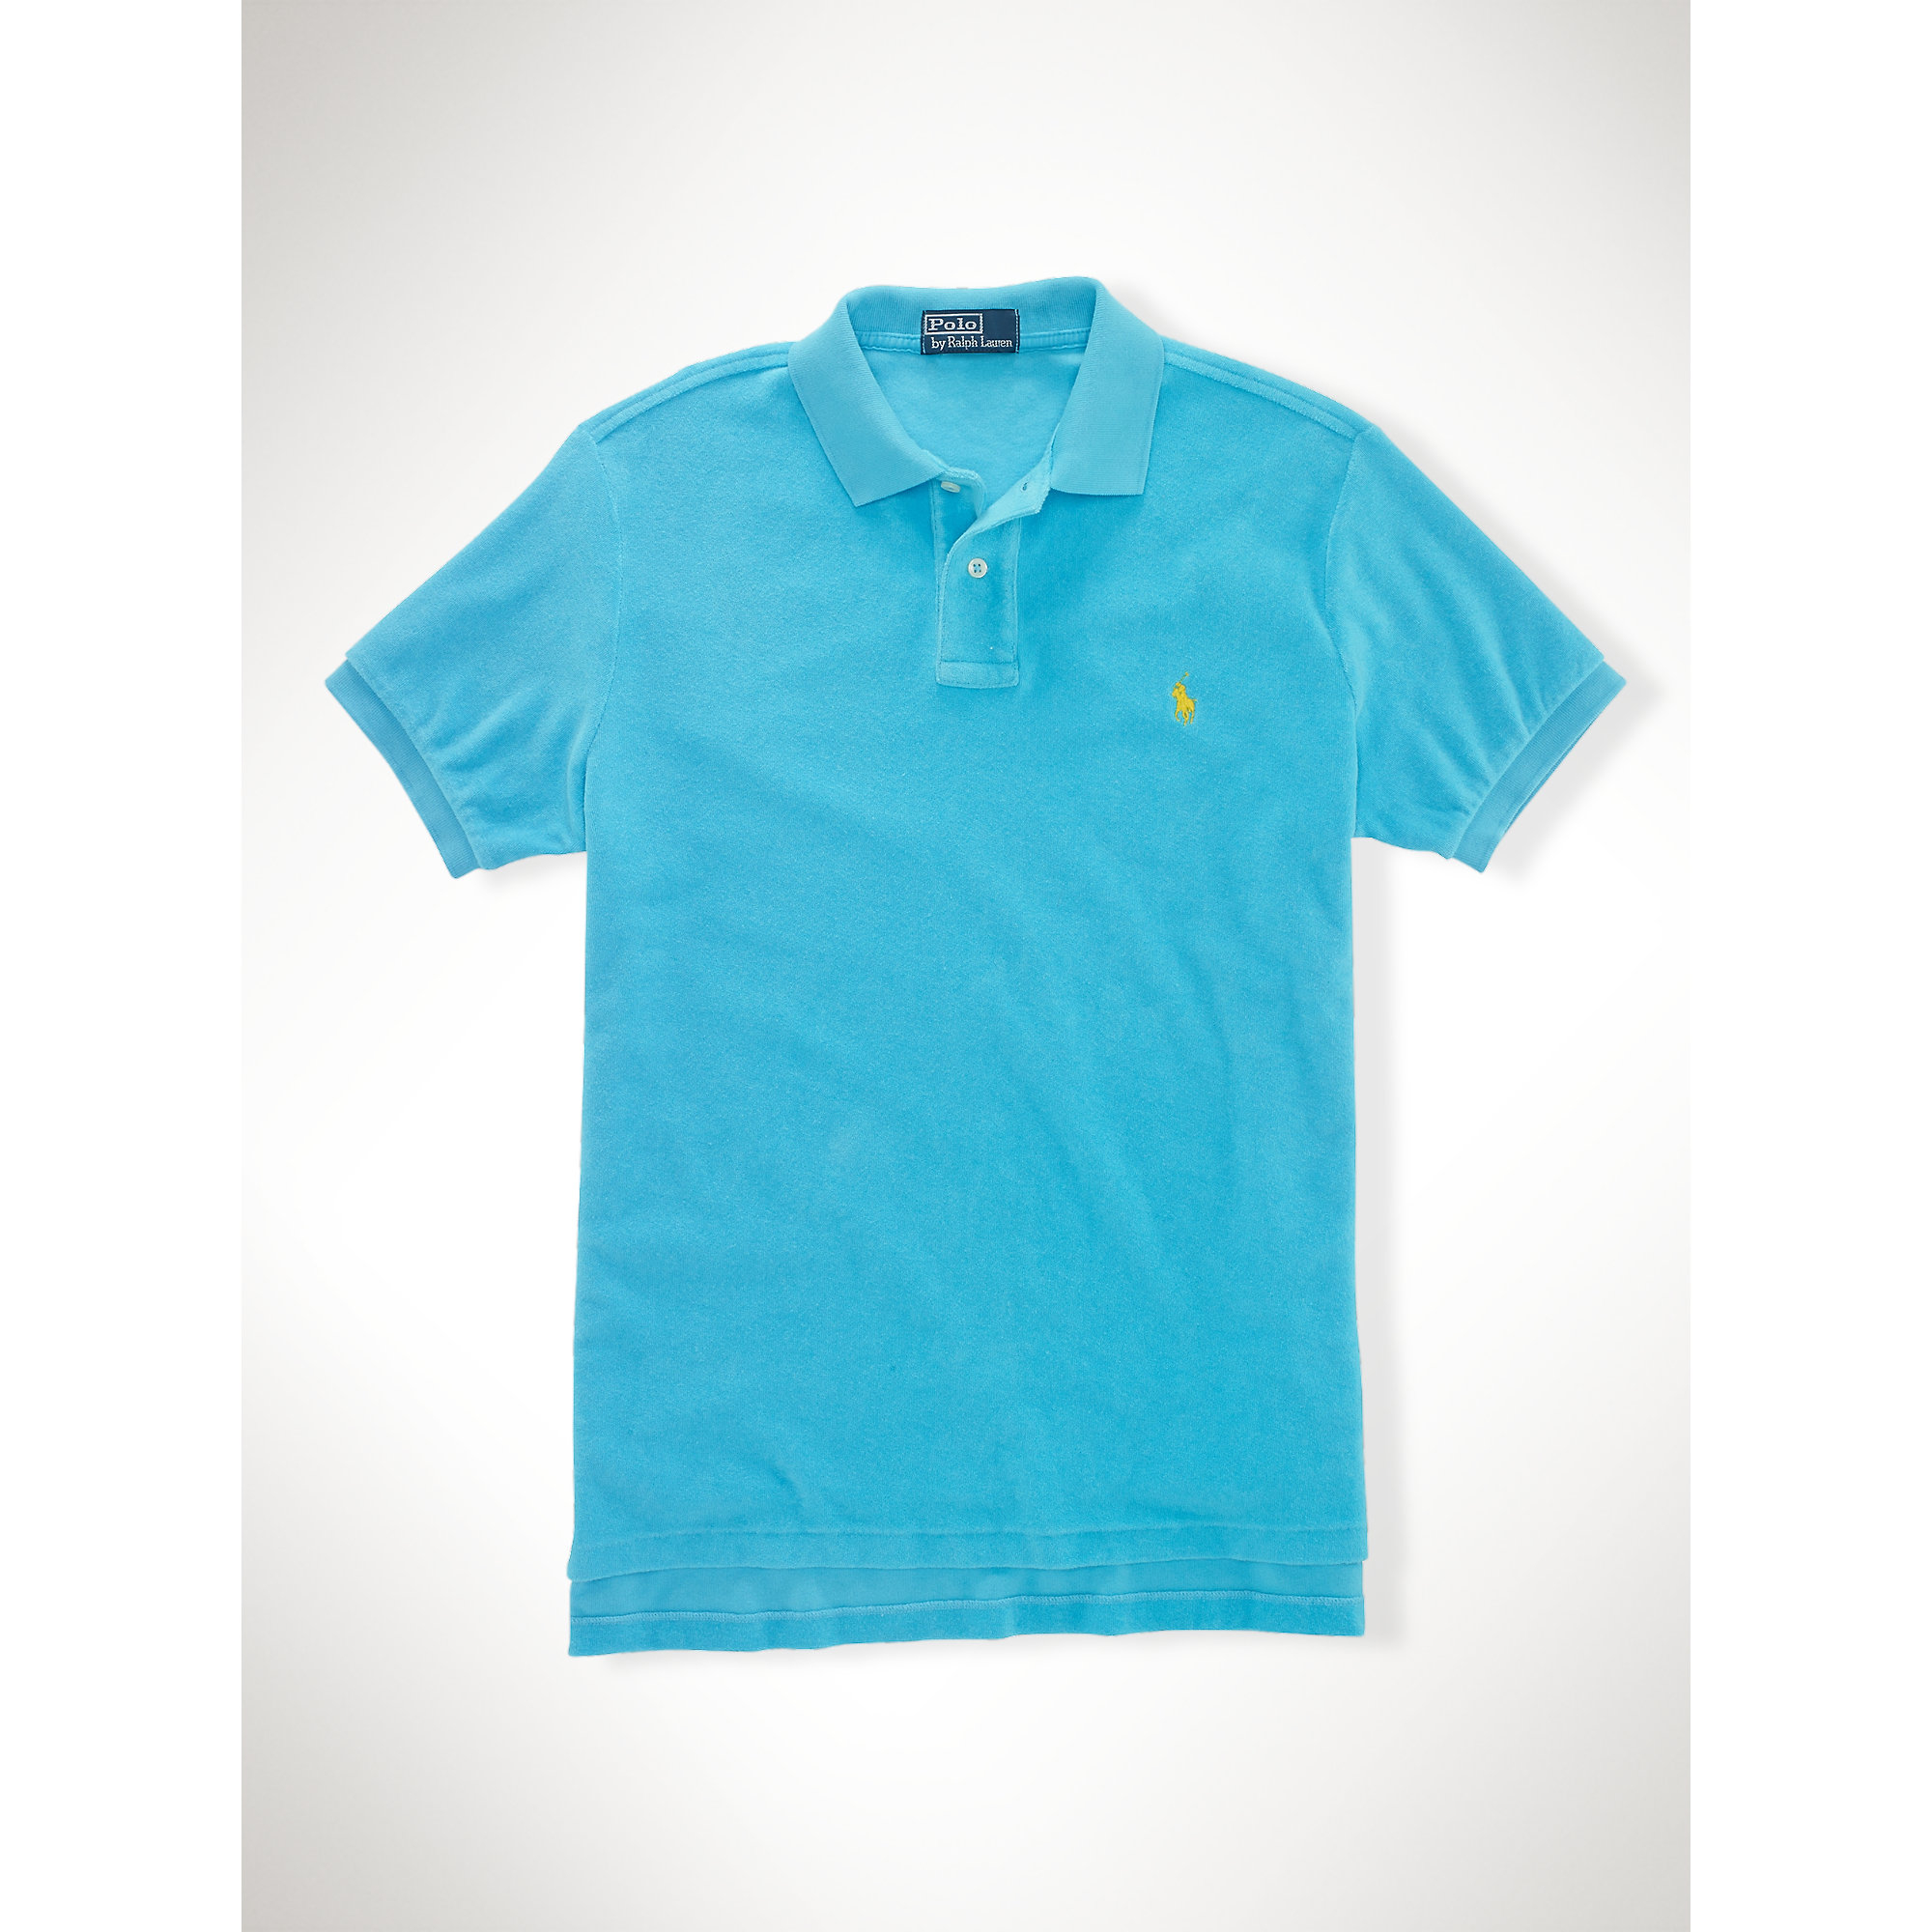 Lyst - Polo Ralph Lauren Custom-Fit Terry Cloth Polo in Blue for Men 15a937971dd5